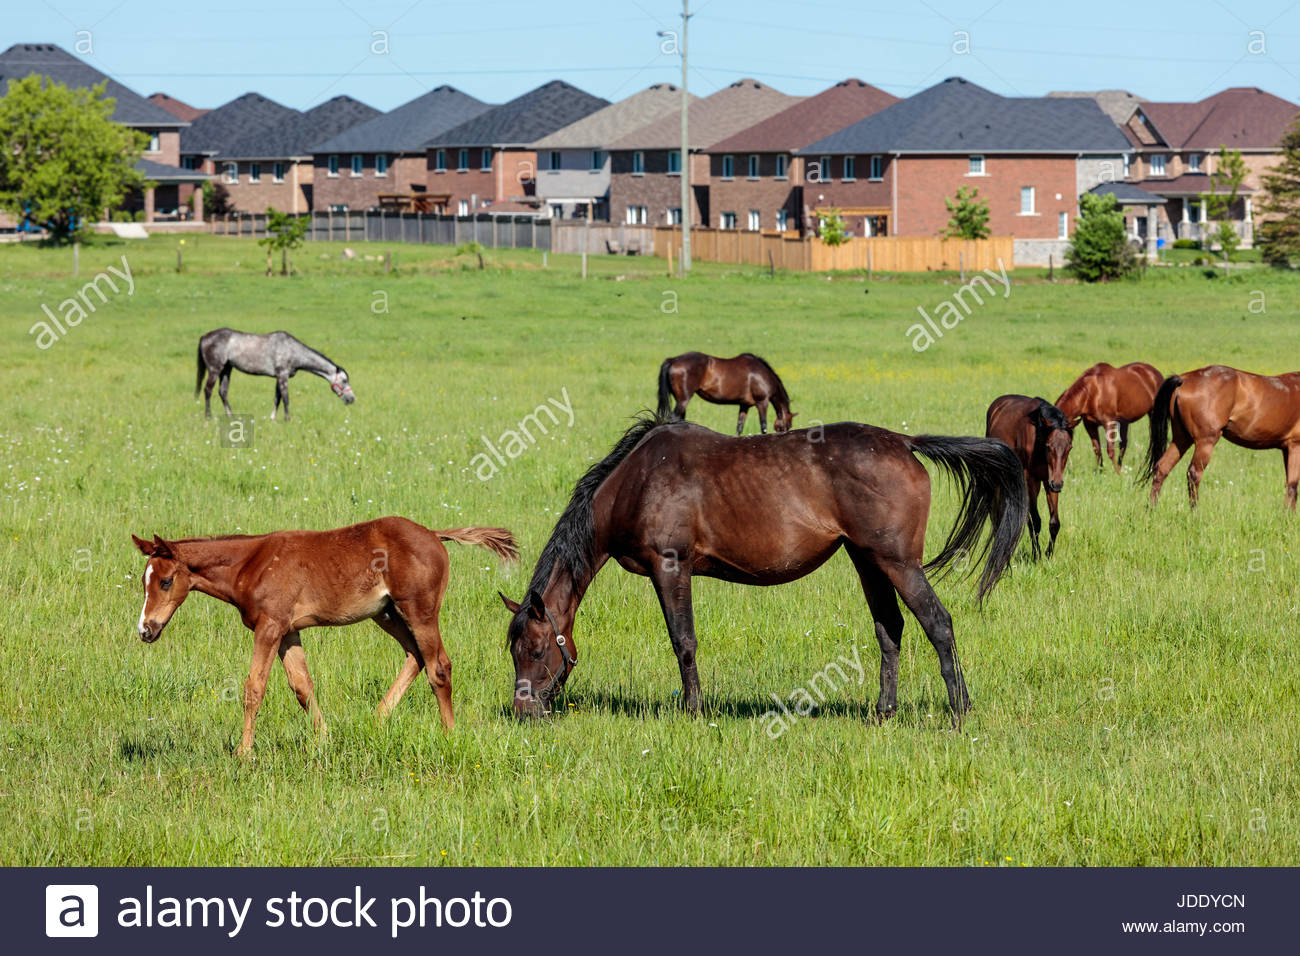 New suburban housing taking over farmland in York Region near Toronto Ontario Canada horse horses urban sprawl house - Stock Image